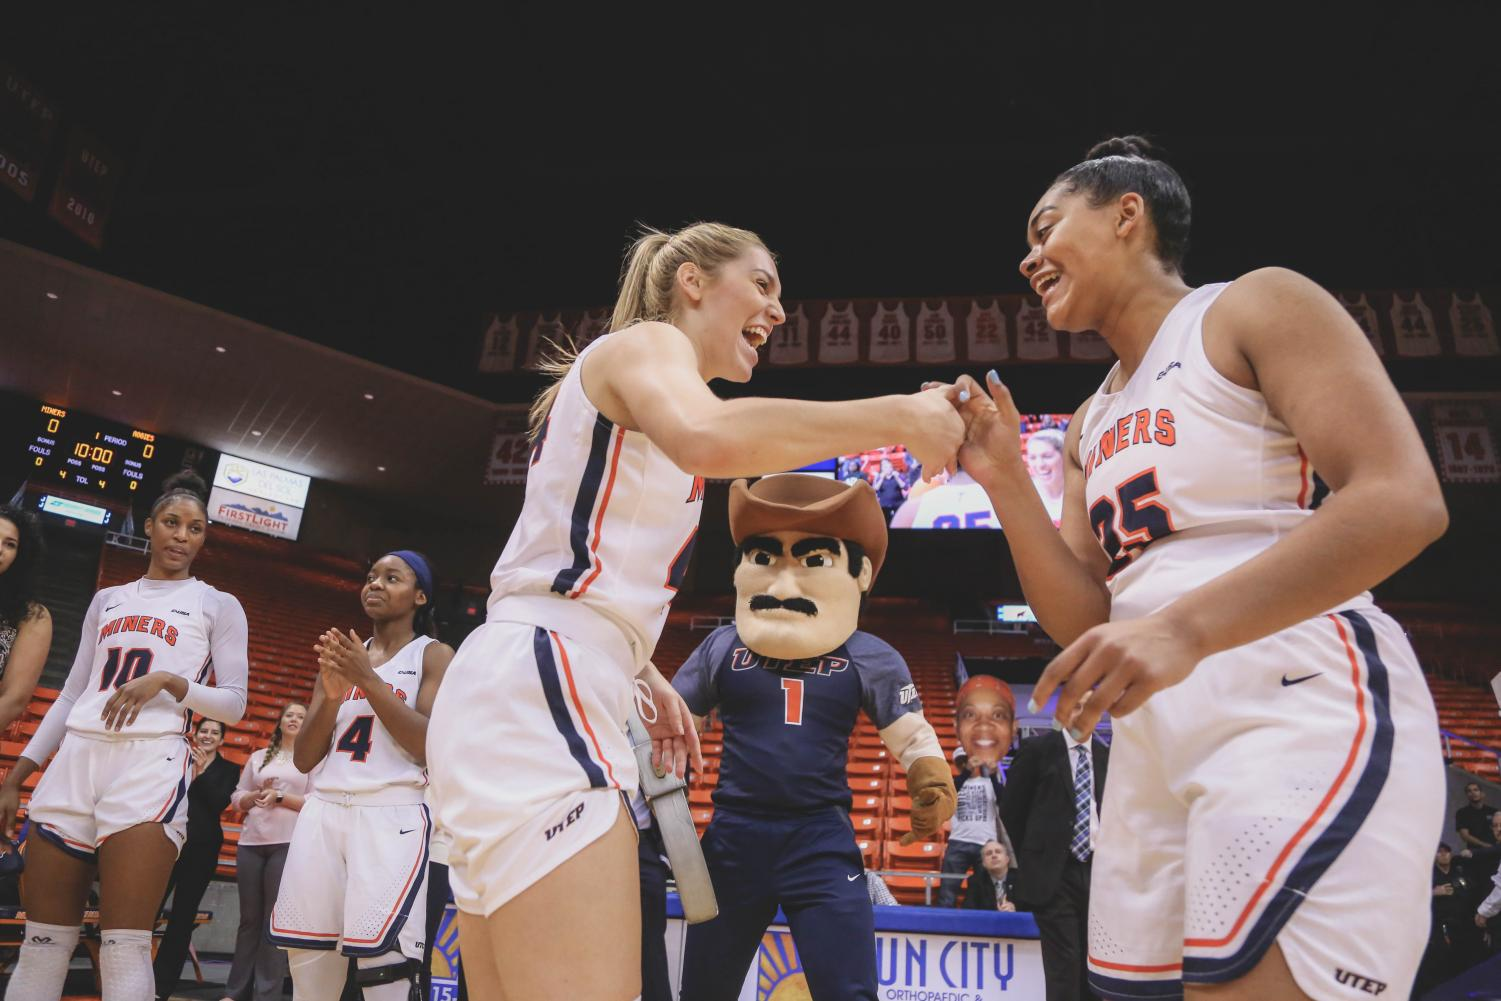 Junior+guard+Katarina+Zec+is+introduced+pre-game+at+a+game+against+the+NMSU+Aggies+on+Saturday%2C+Nov.+17.+